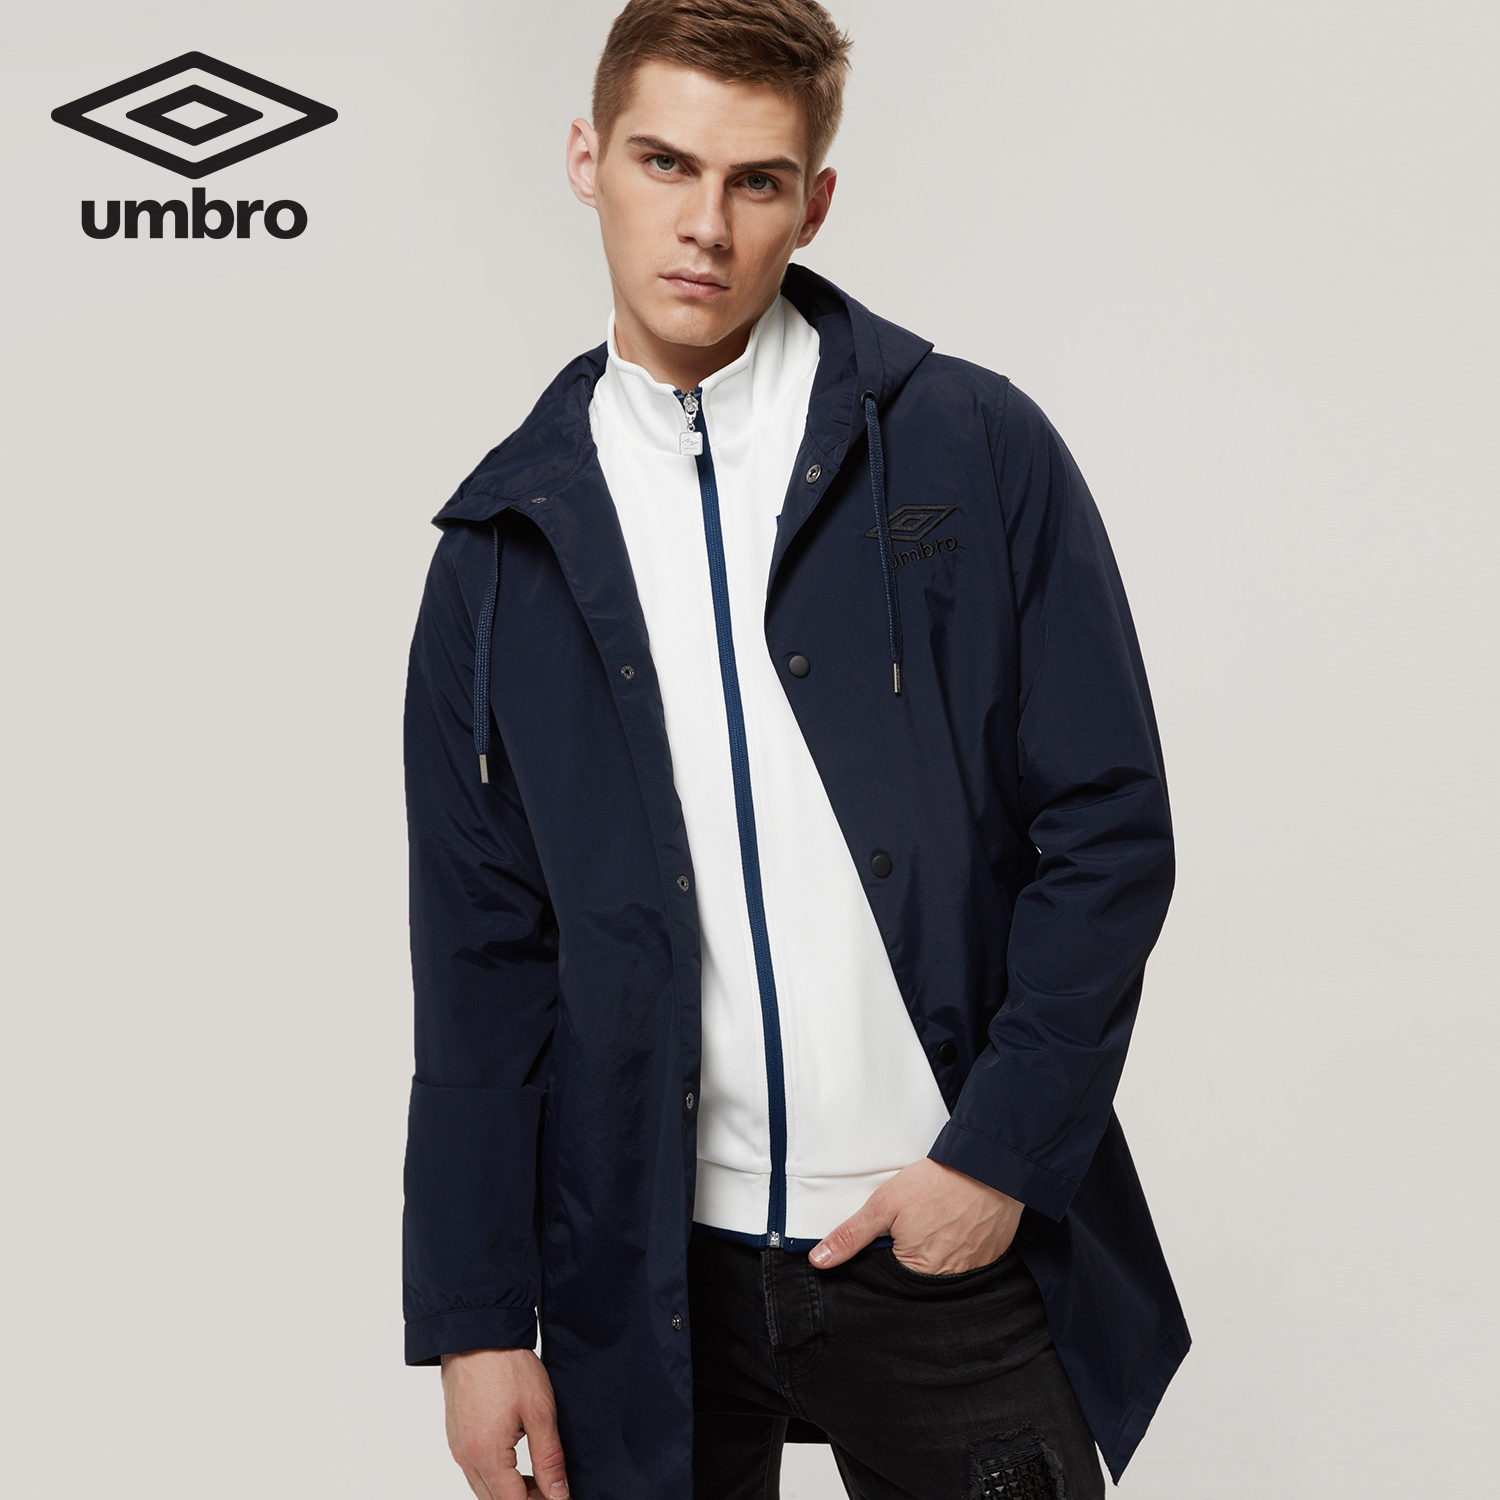 Umbro New Men Hooded Windproof Coat Knee Long Sleeve Sports Jacket Zip Up Clothing Sportswear UI173AP2223 sequin embroidered zip up jacket page 2